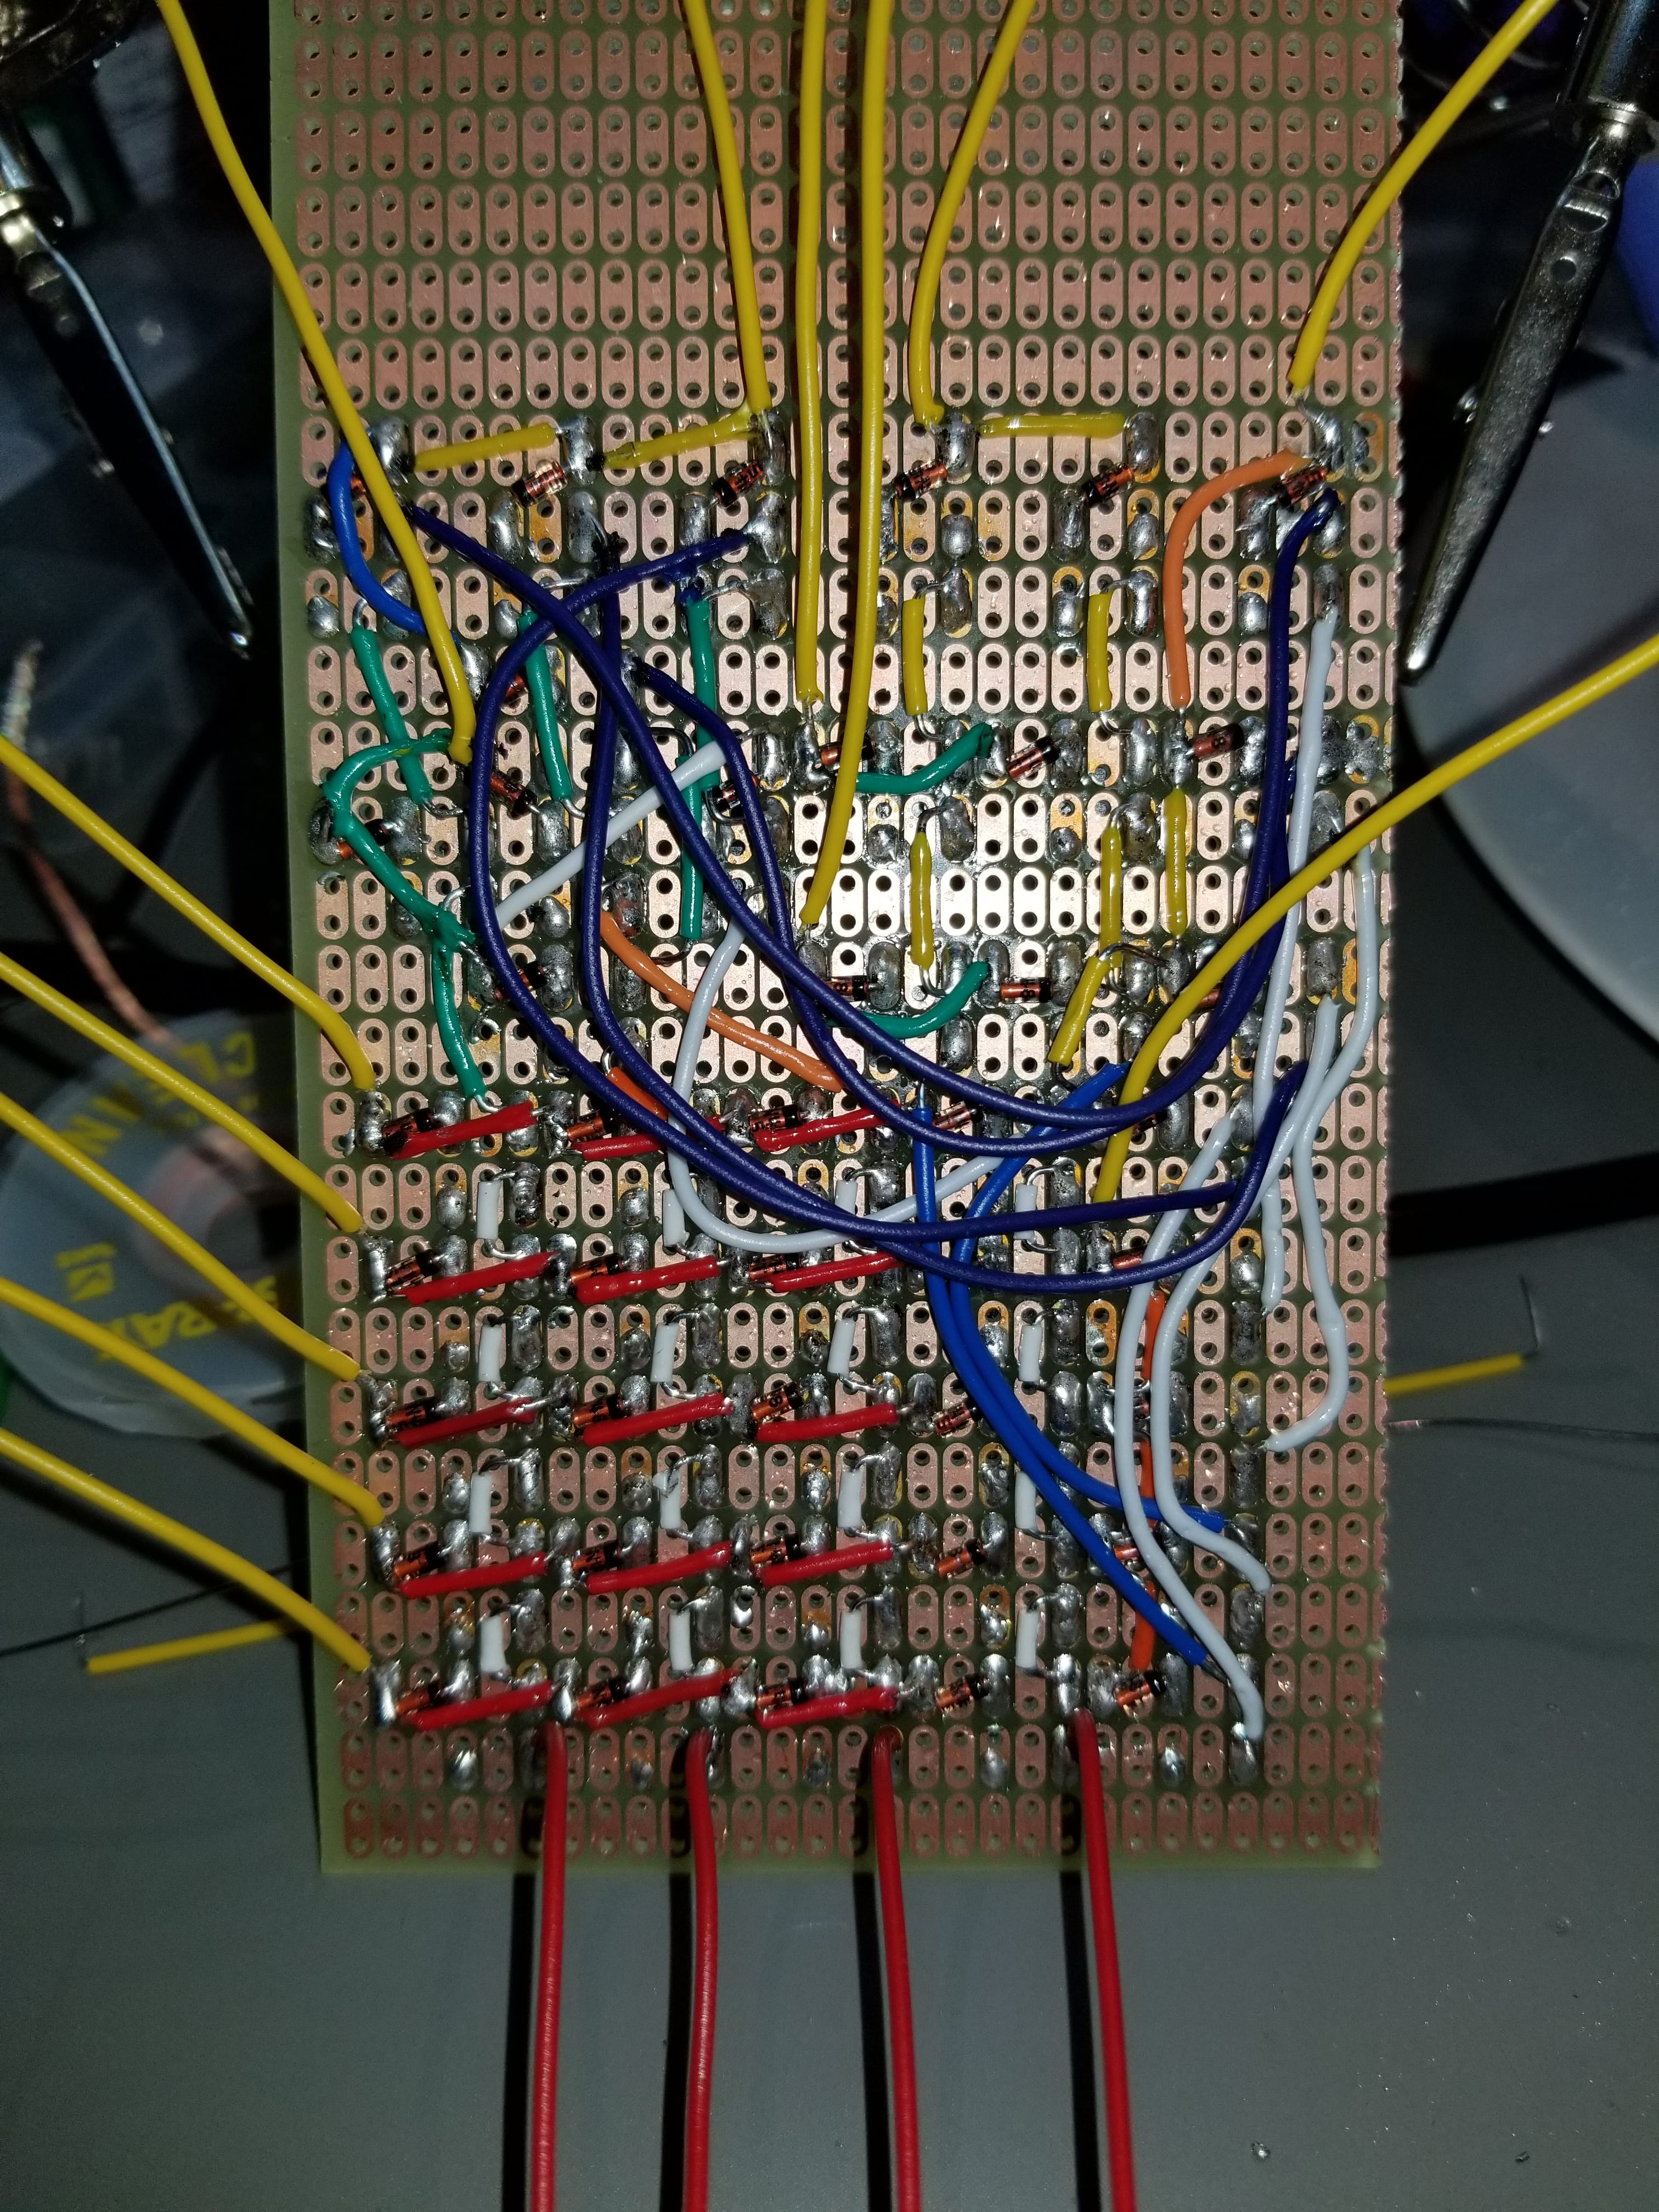 42 Key Keypad On 5 Wires Complete Parallax Forums First Step Into Programming Propeller 20171128 235623 Min